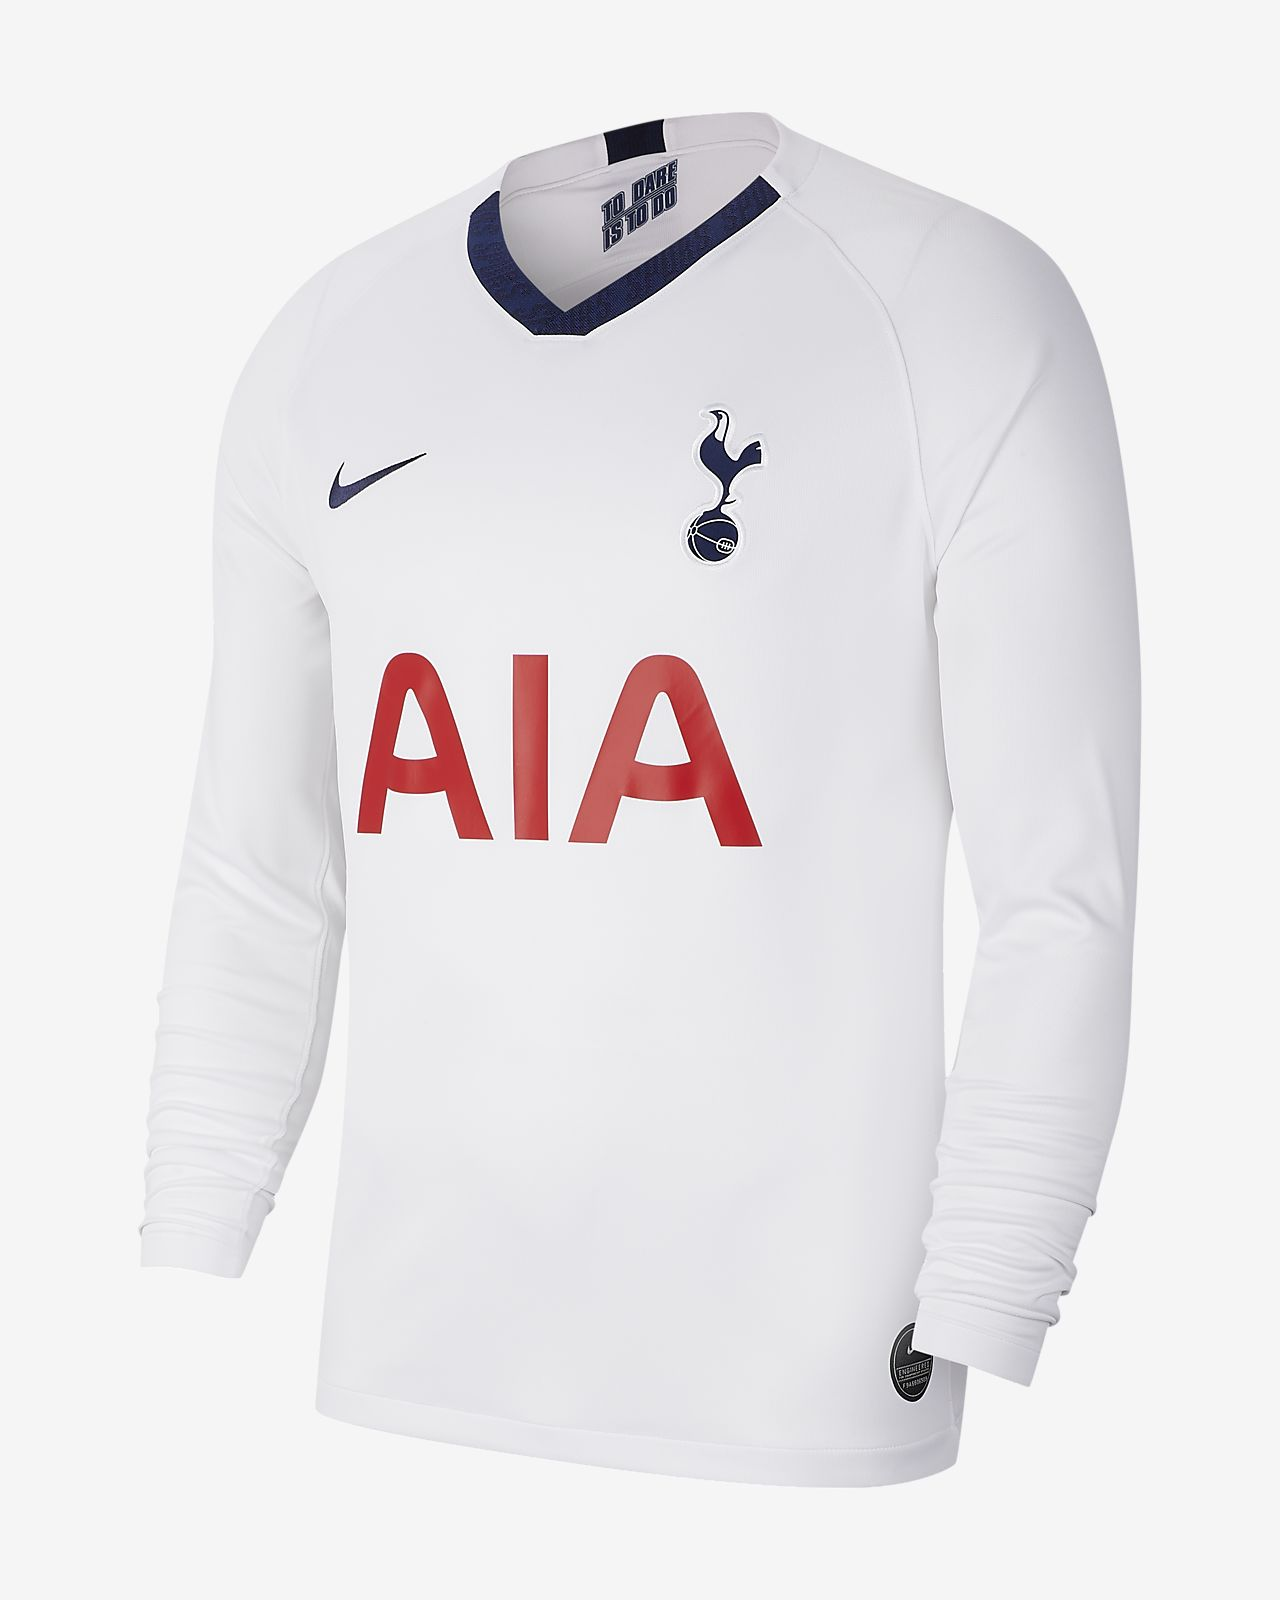 Tottenham Hotspur 2019/20 Stadium Home Men's Long-Sleeve Football Shirt